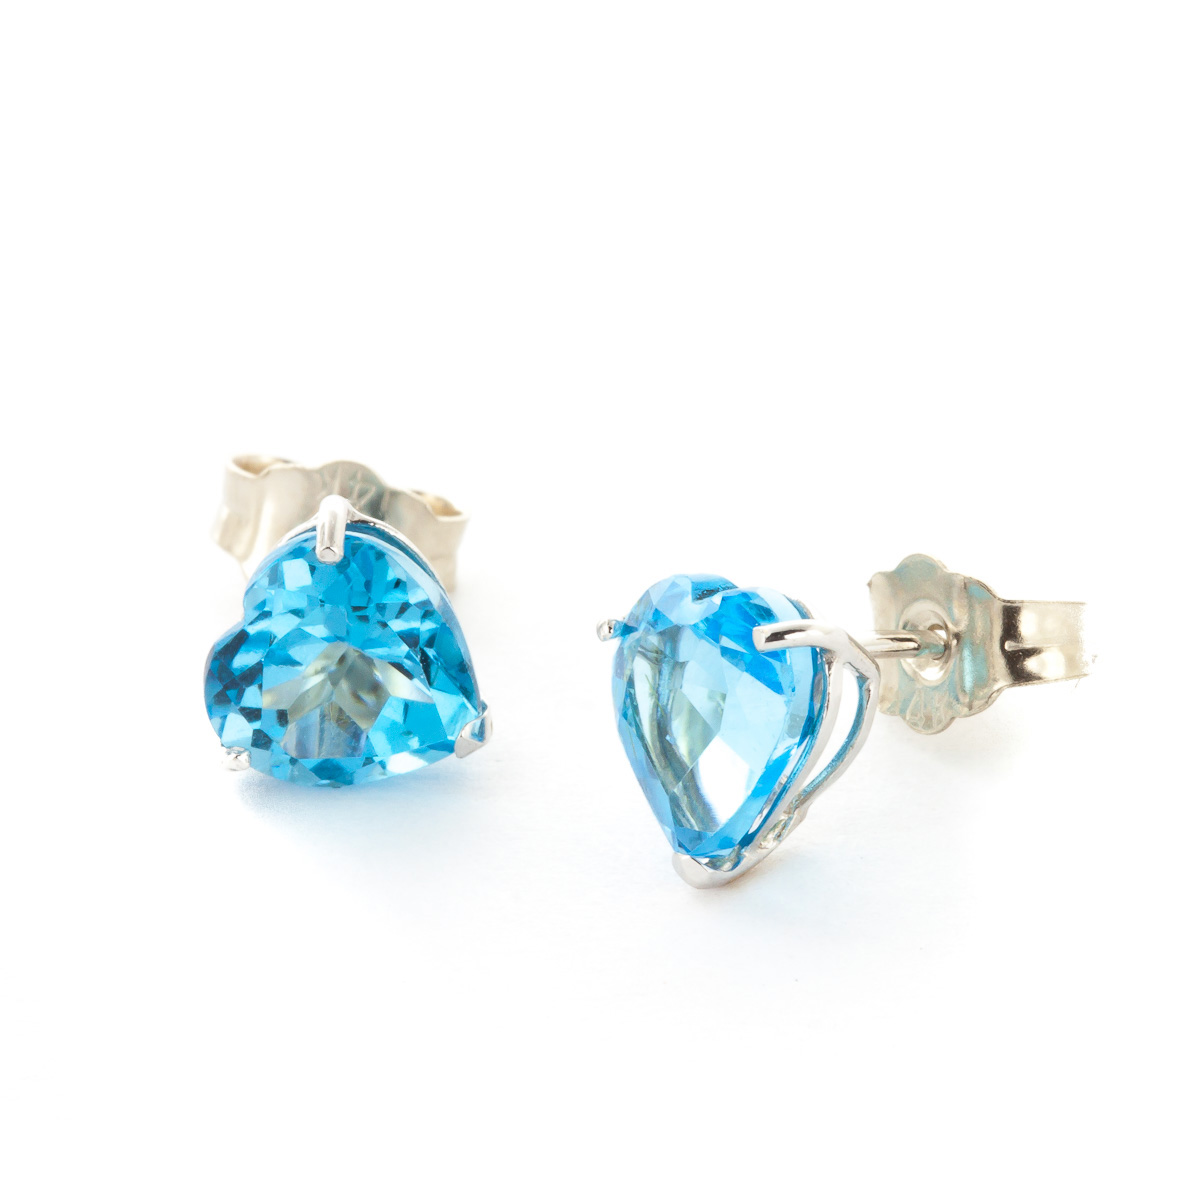 Blue Topaz Stud Earrings 3.25 ctw in 9ct White Gold